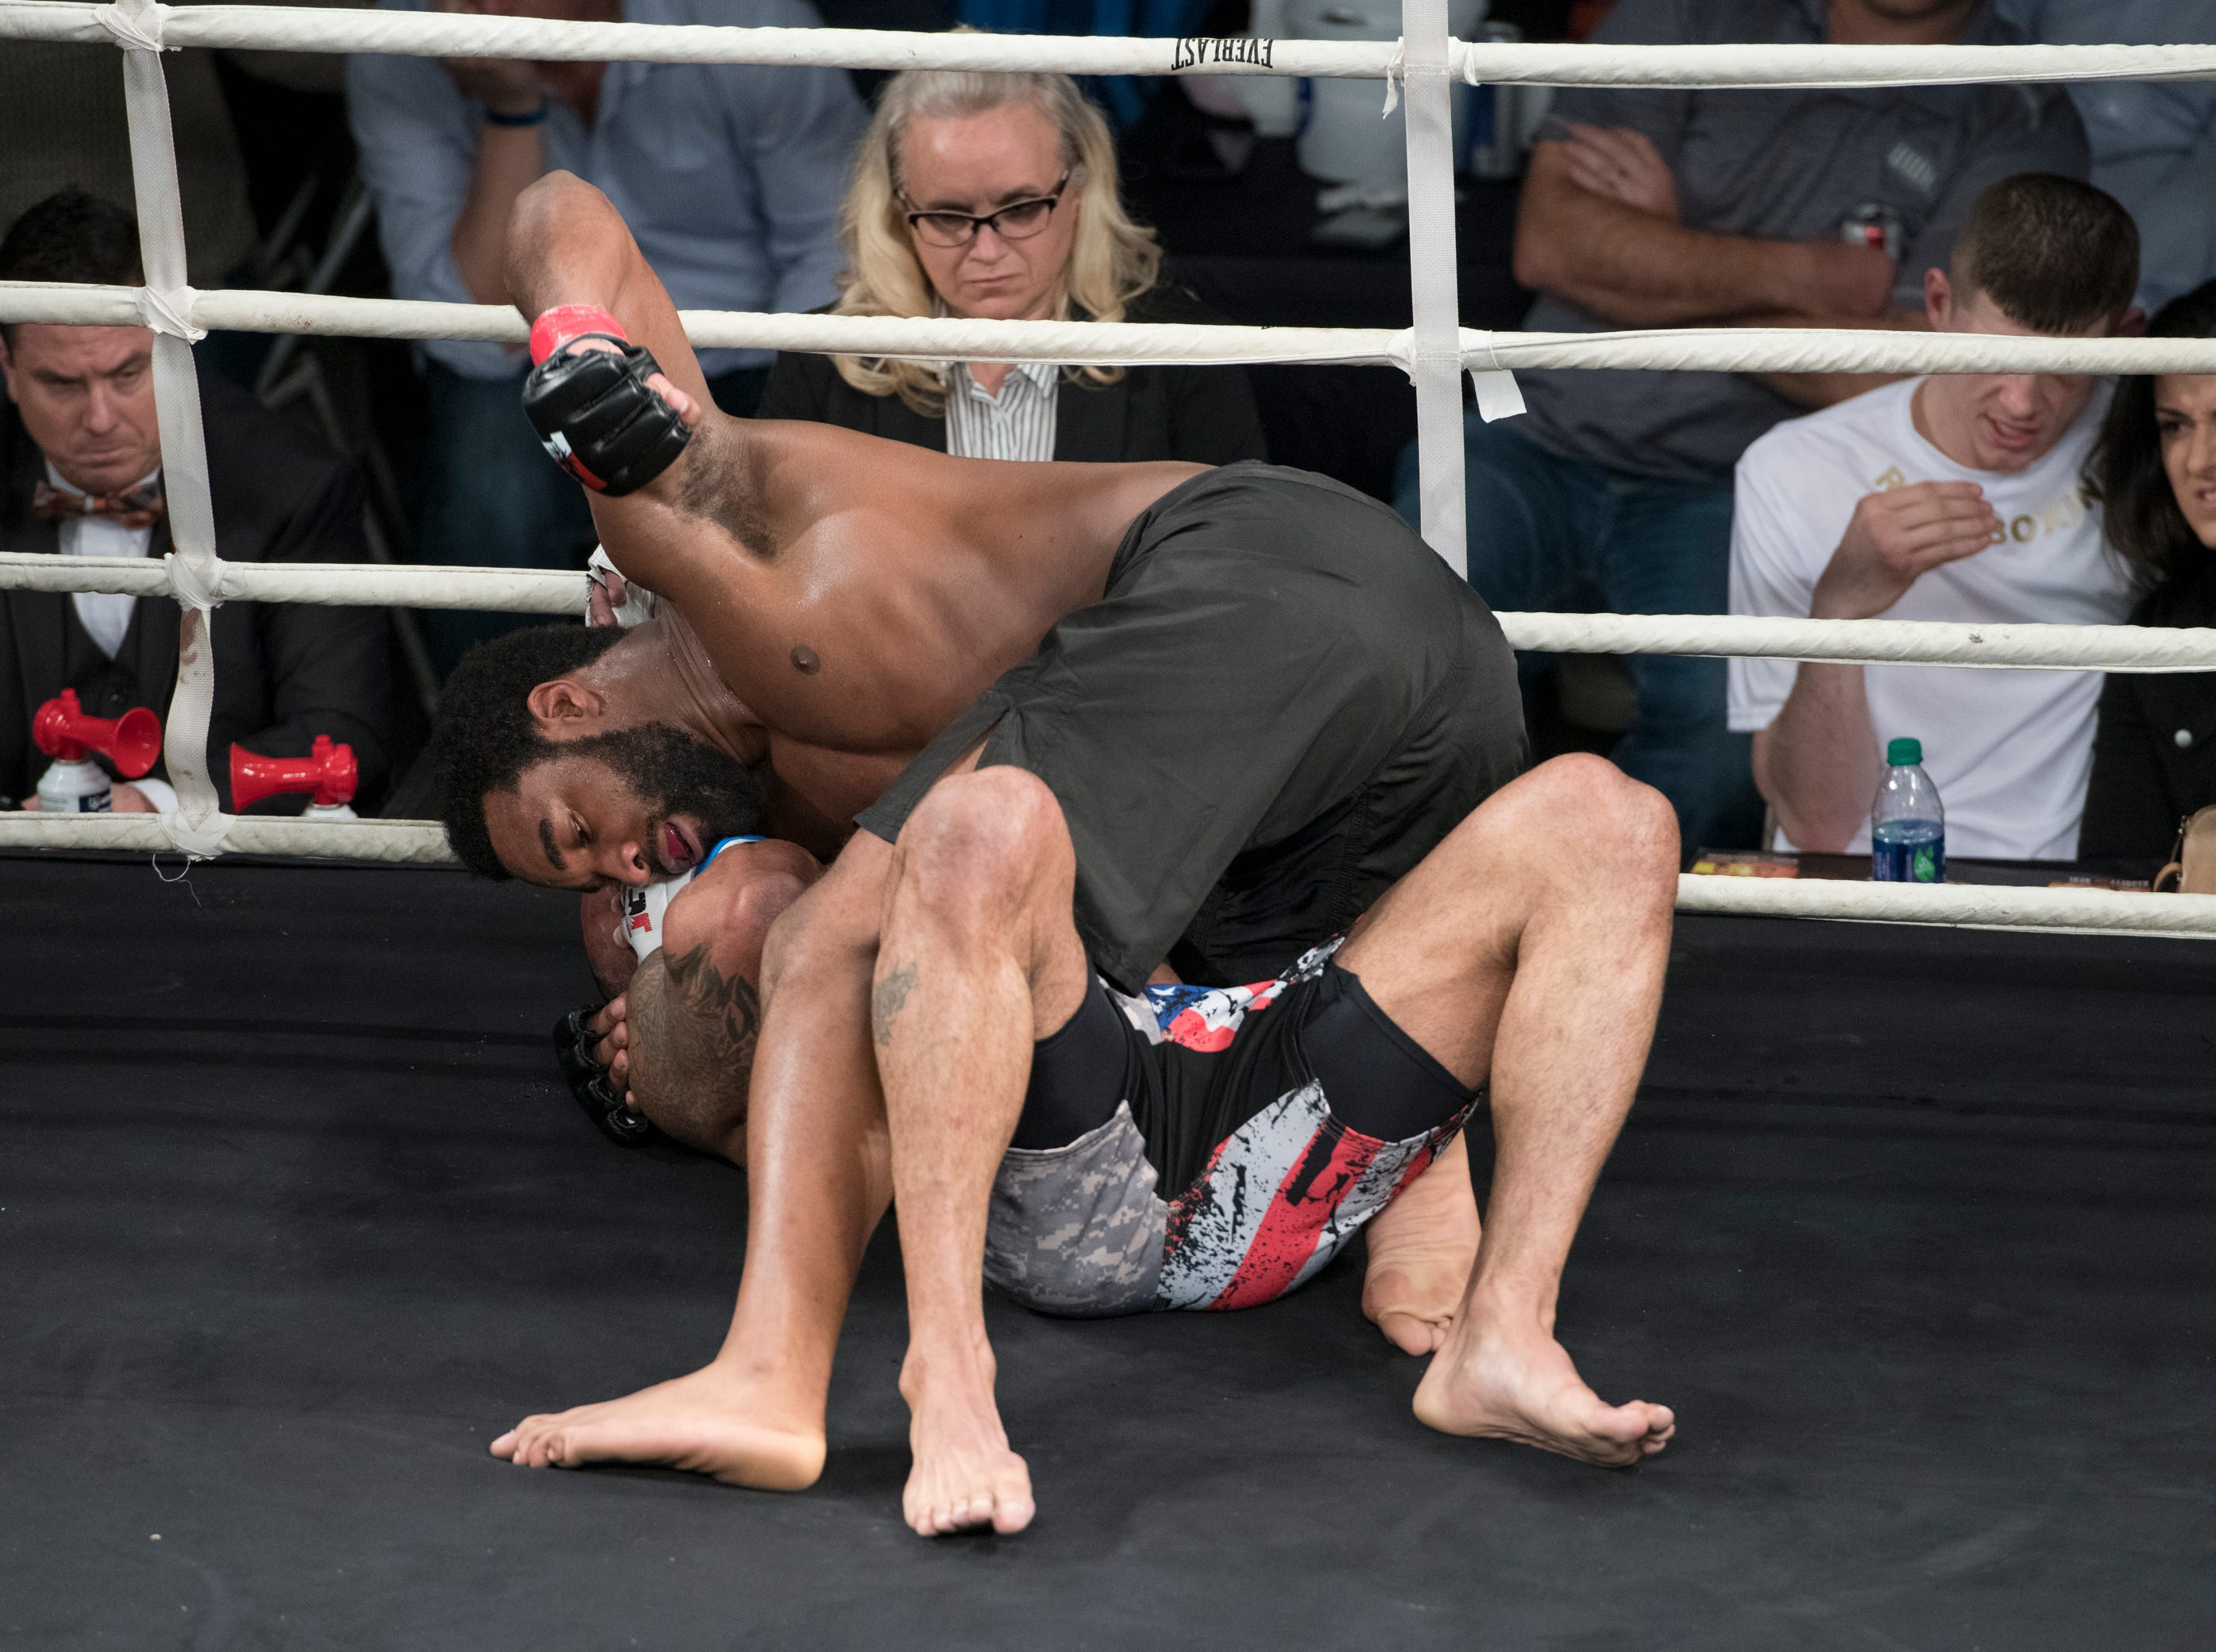 Andre Hall (red taped gloves) and Michael Morgan (blue taped gloves) fight during the Island Fights 52 at the Jadji Shrine in Pensacola on Thursday, February 7, 2019.